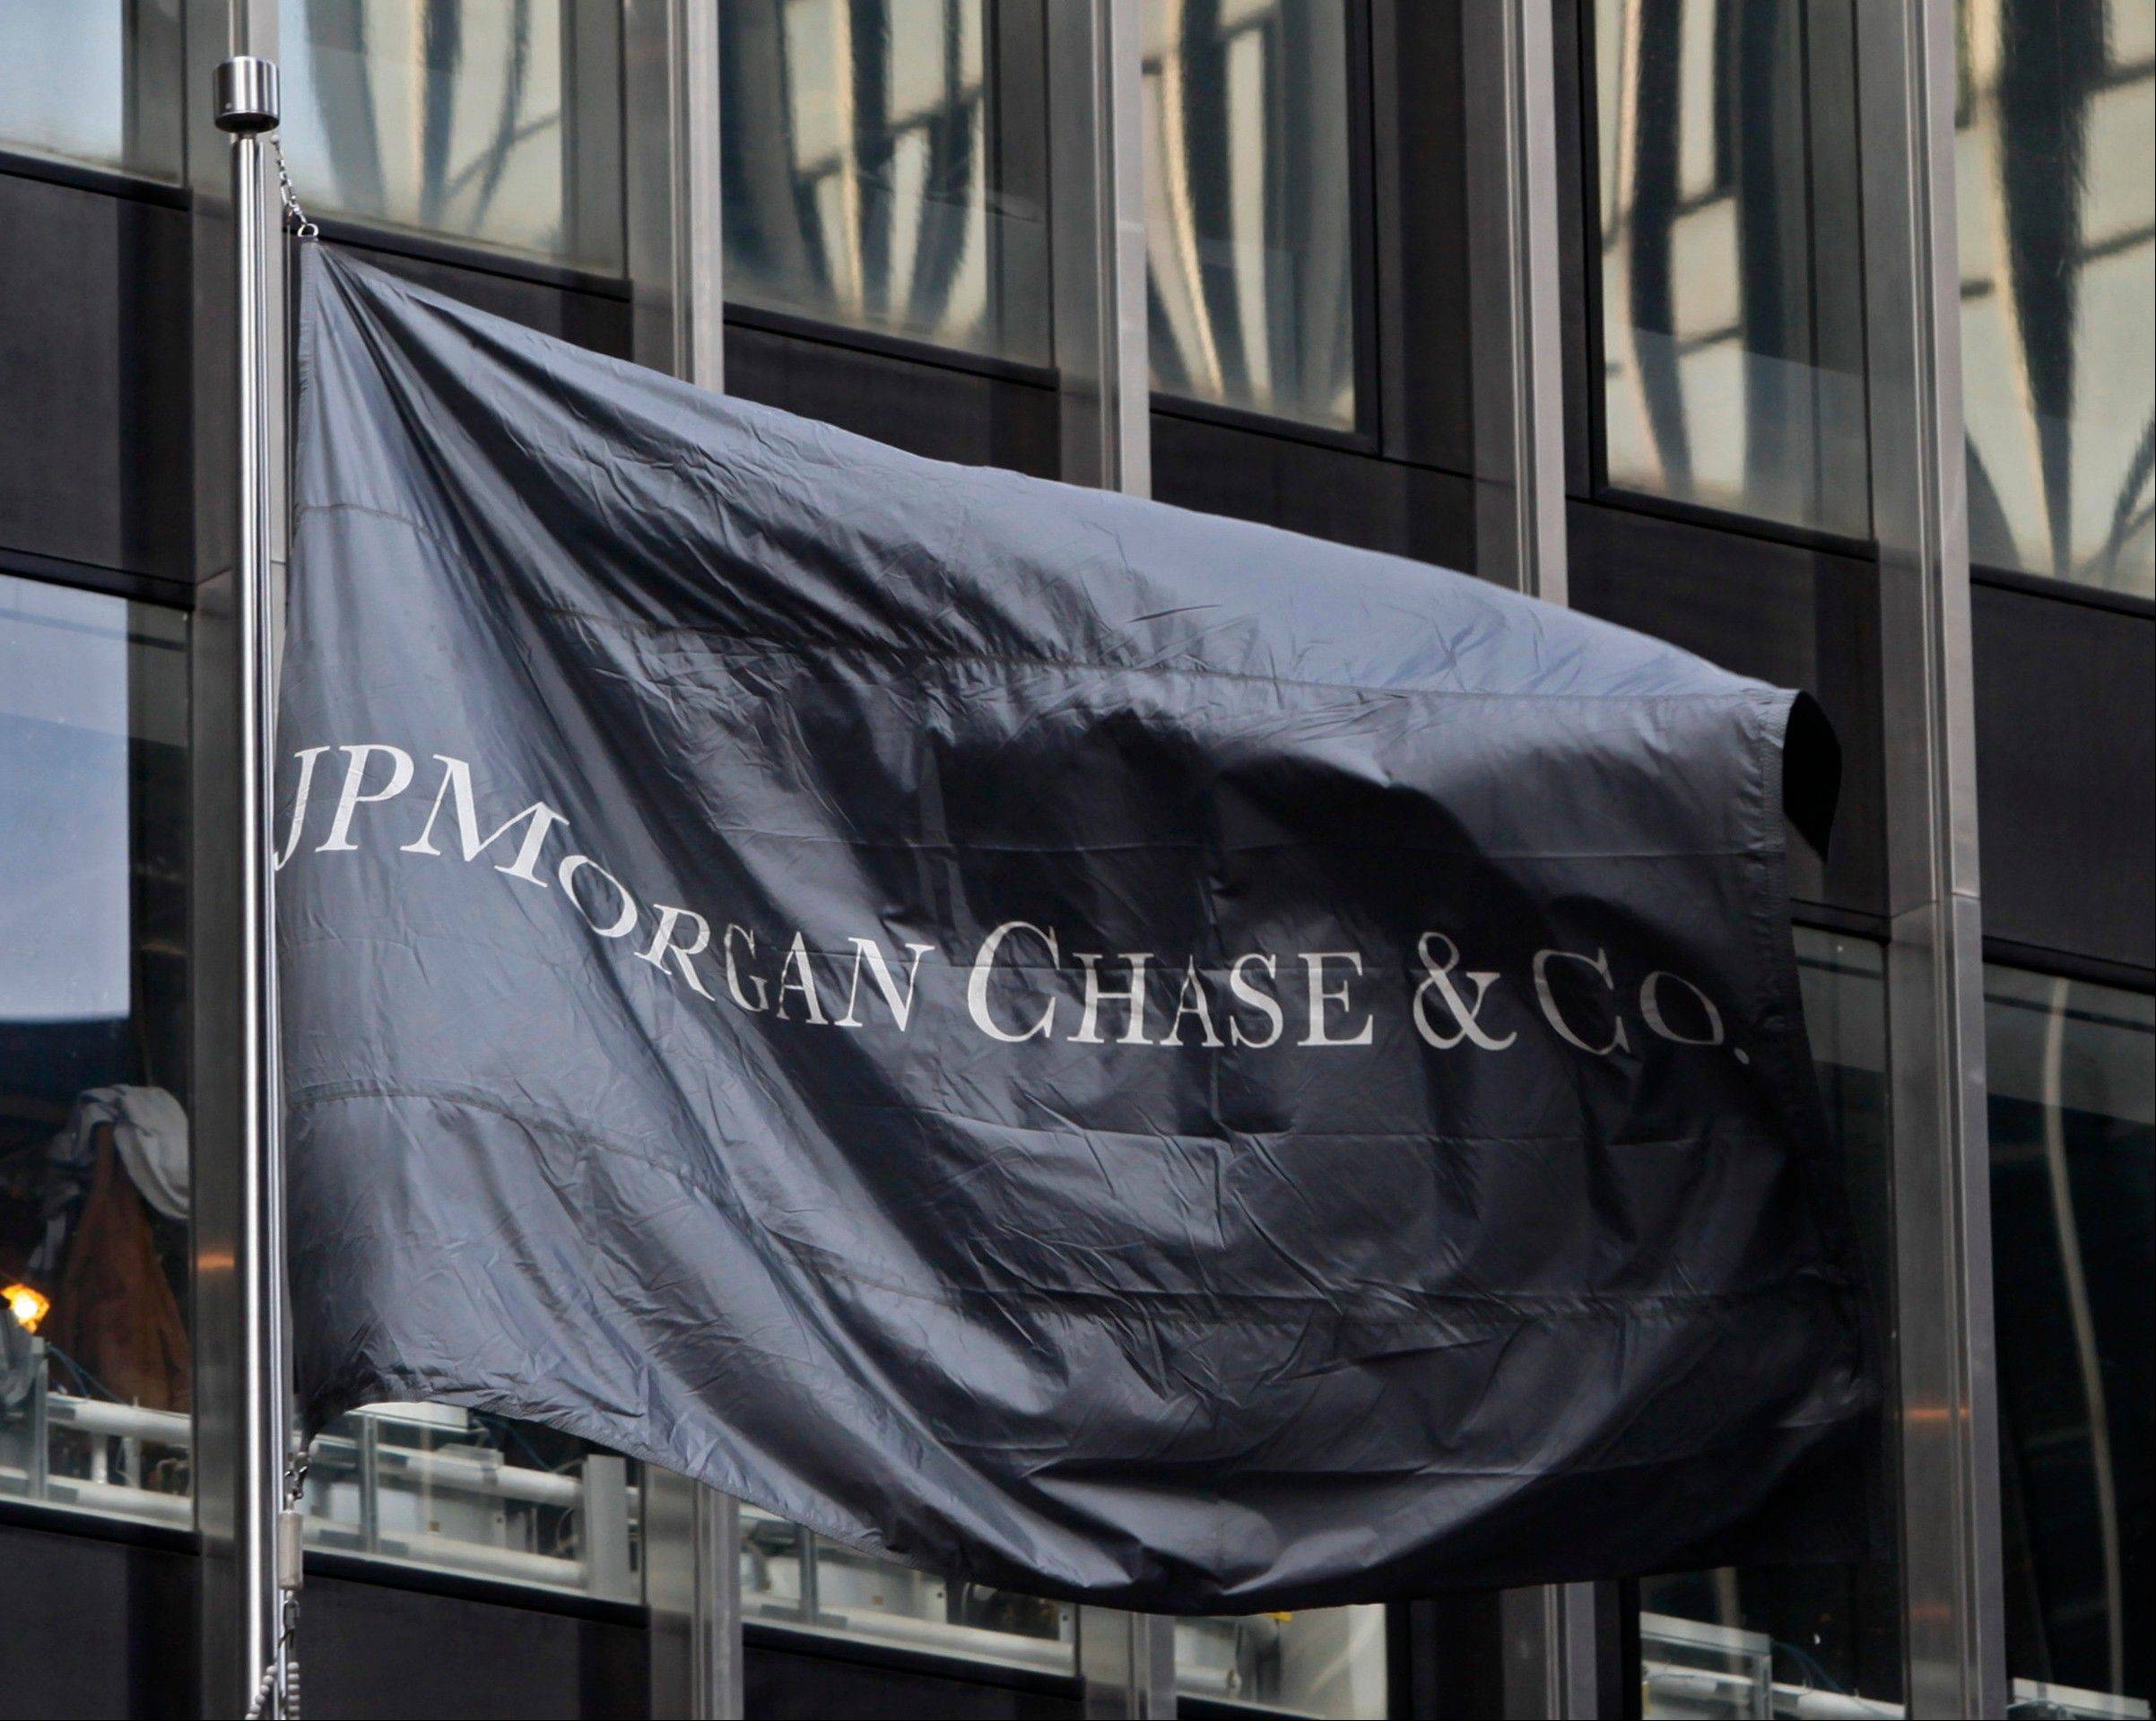 JPMorgan Chase, the biggest U.S. bank by assets, is reporting a surprise third-quarter loss after a big charge for legal expenses.